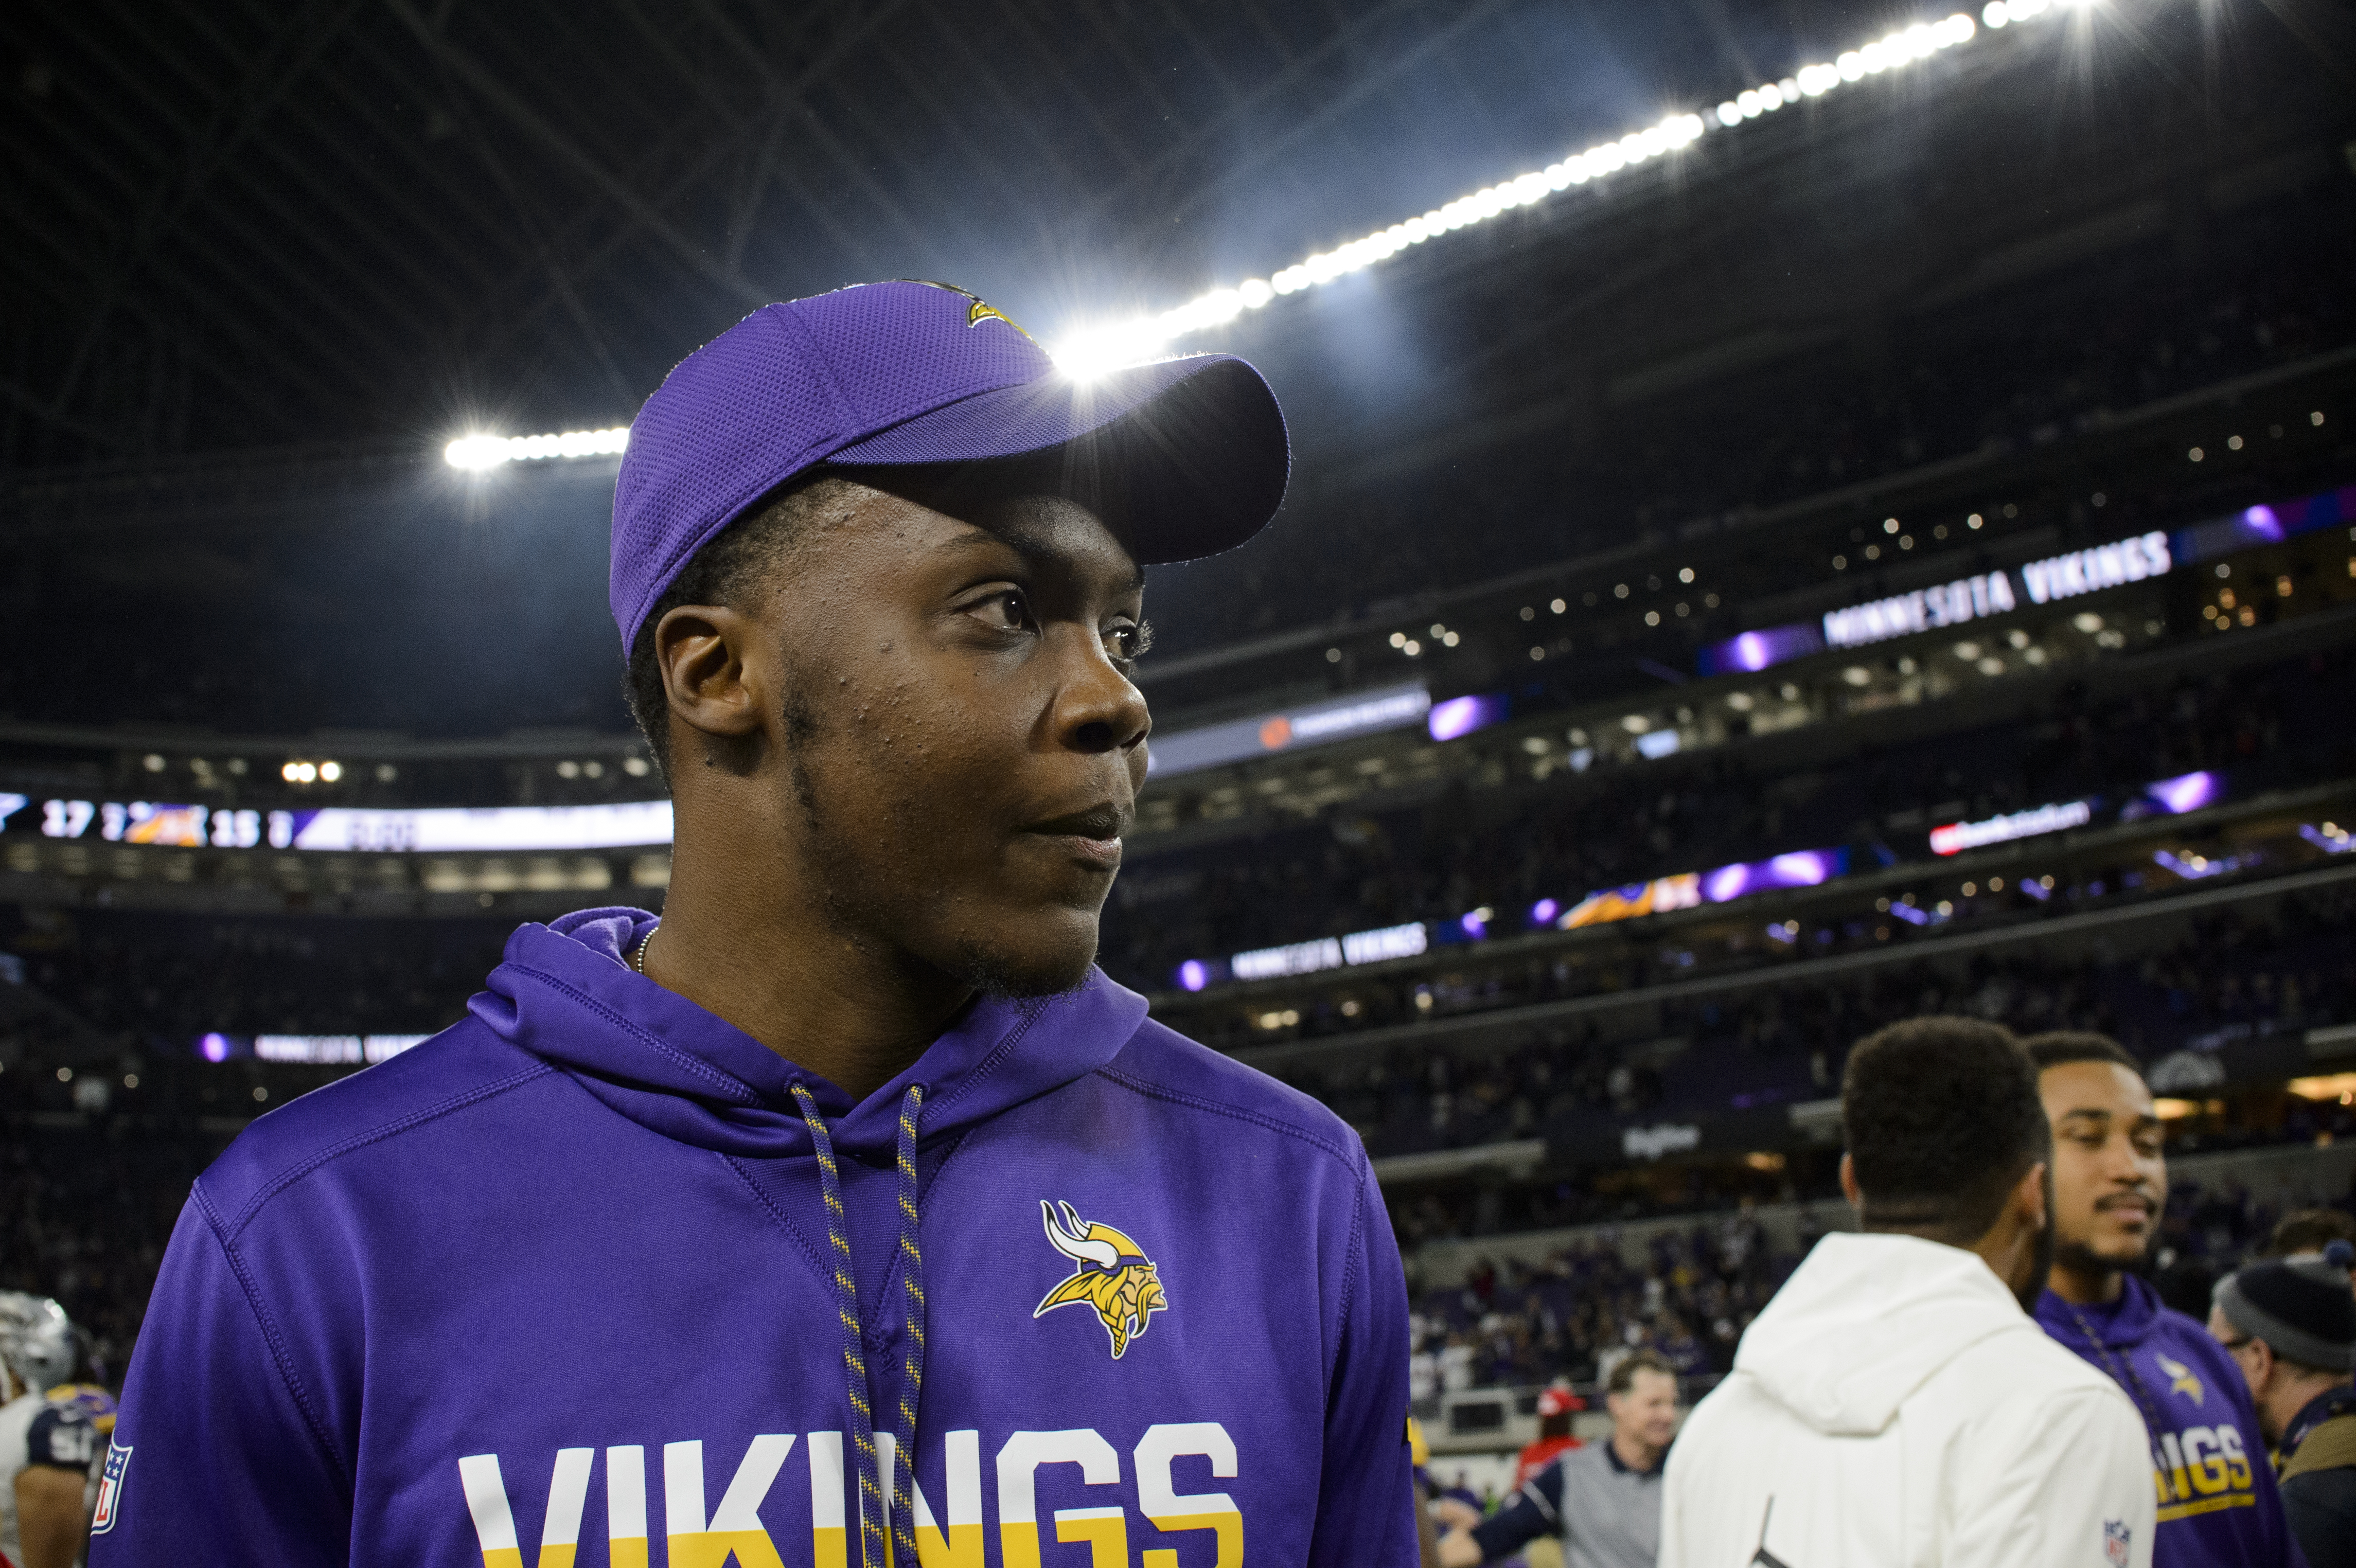 Teddy bridgewater injury update vikings expect qb to miss 2017 too report says sporting news - Teddy Bridgewater Injury Update Vikings Expect Qb To Miss 2017 Too Report Says Sporting News 10